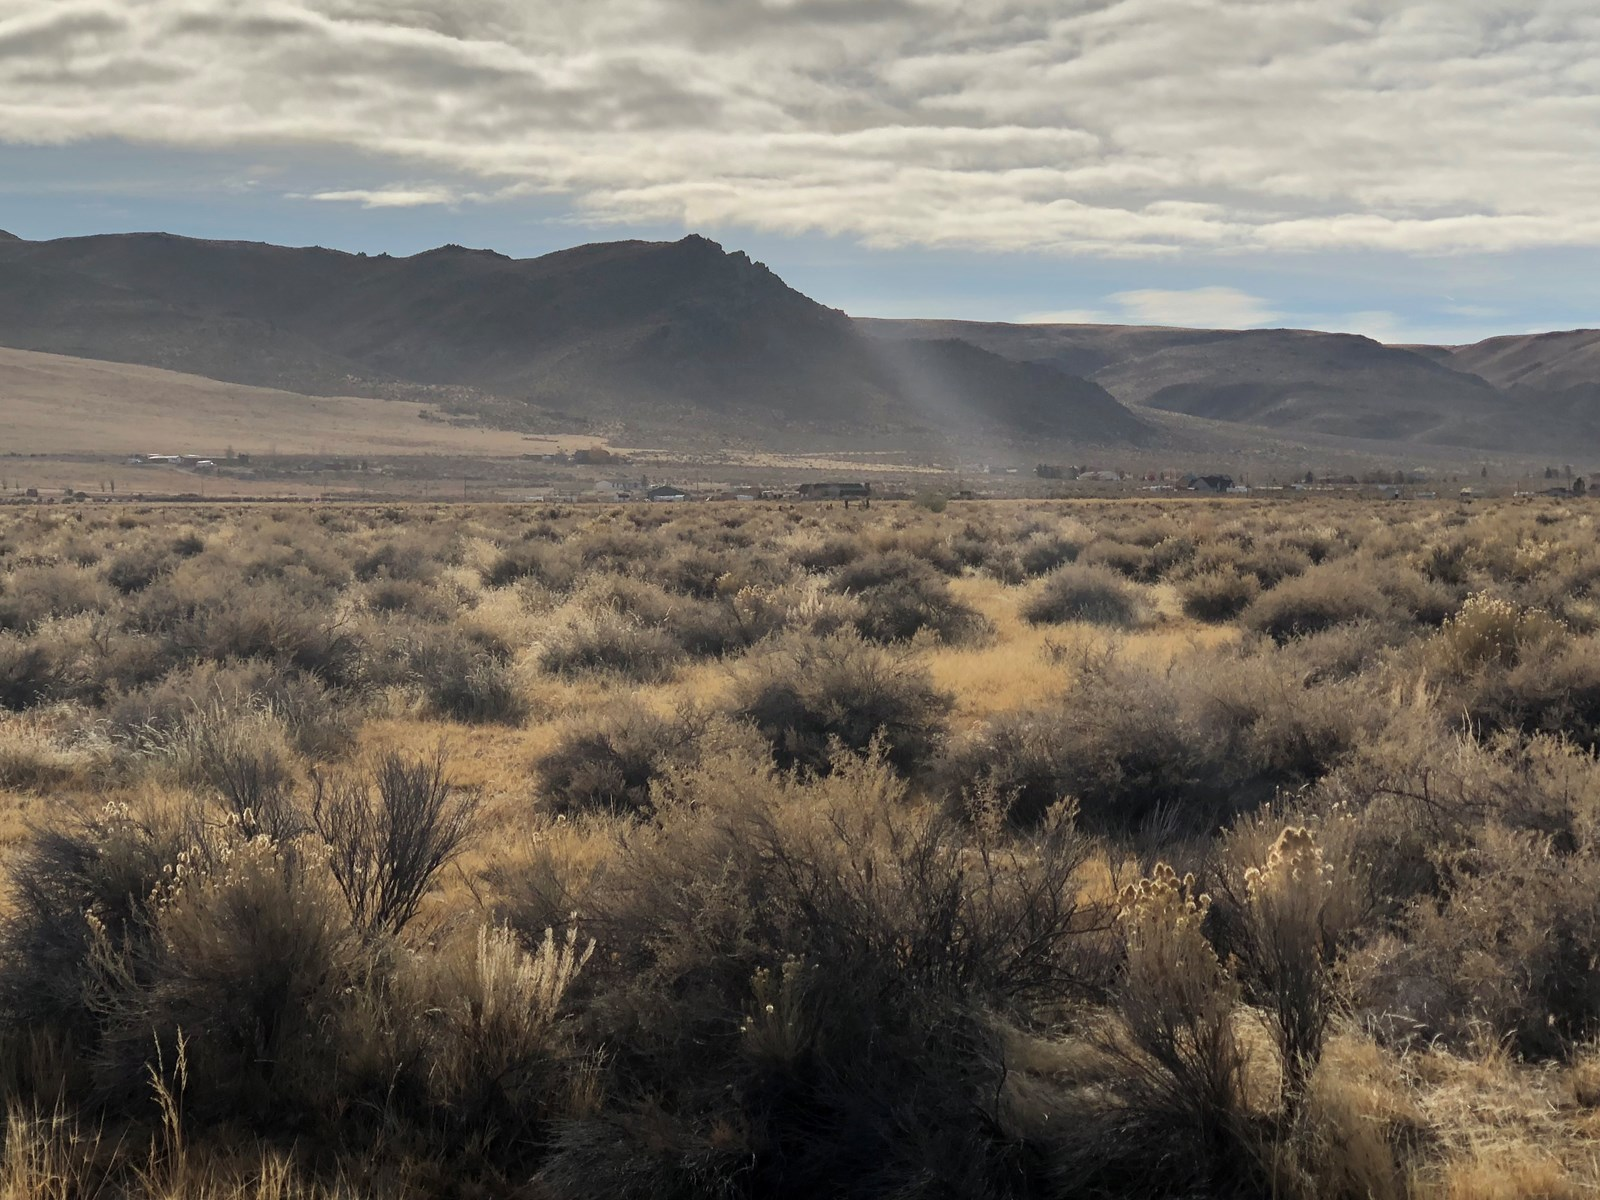 Vacant land for sale in NW Nevada near Reno, 37+ acres